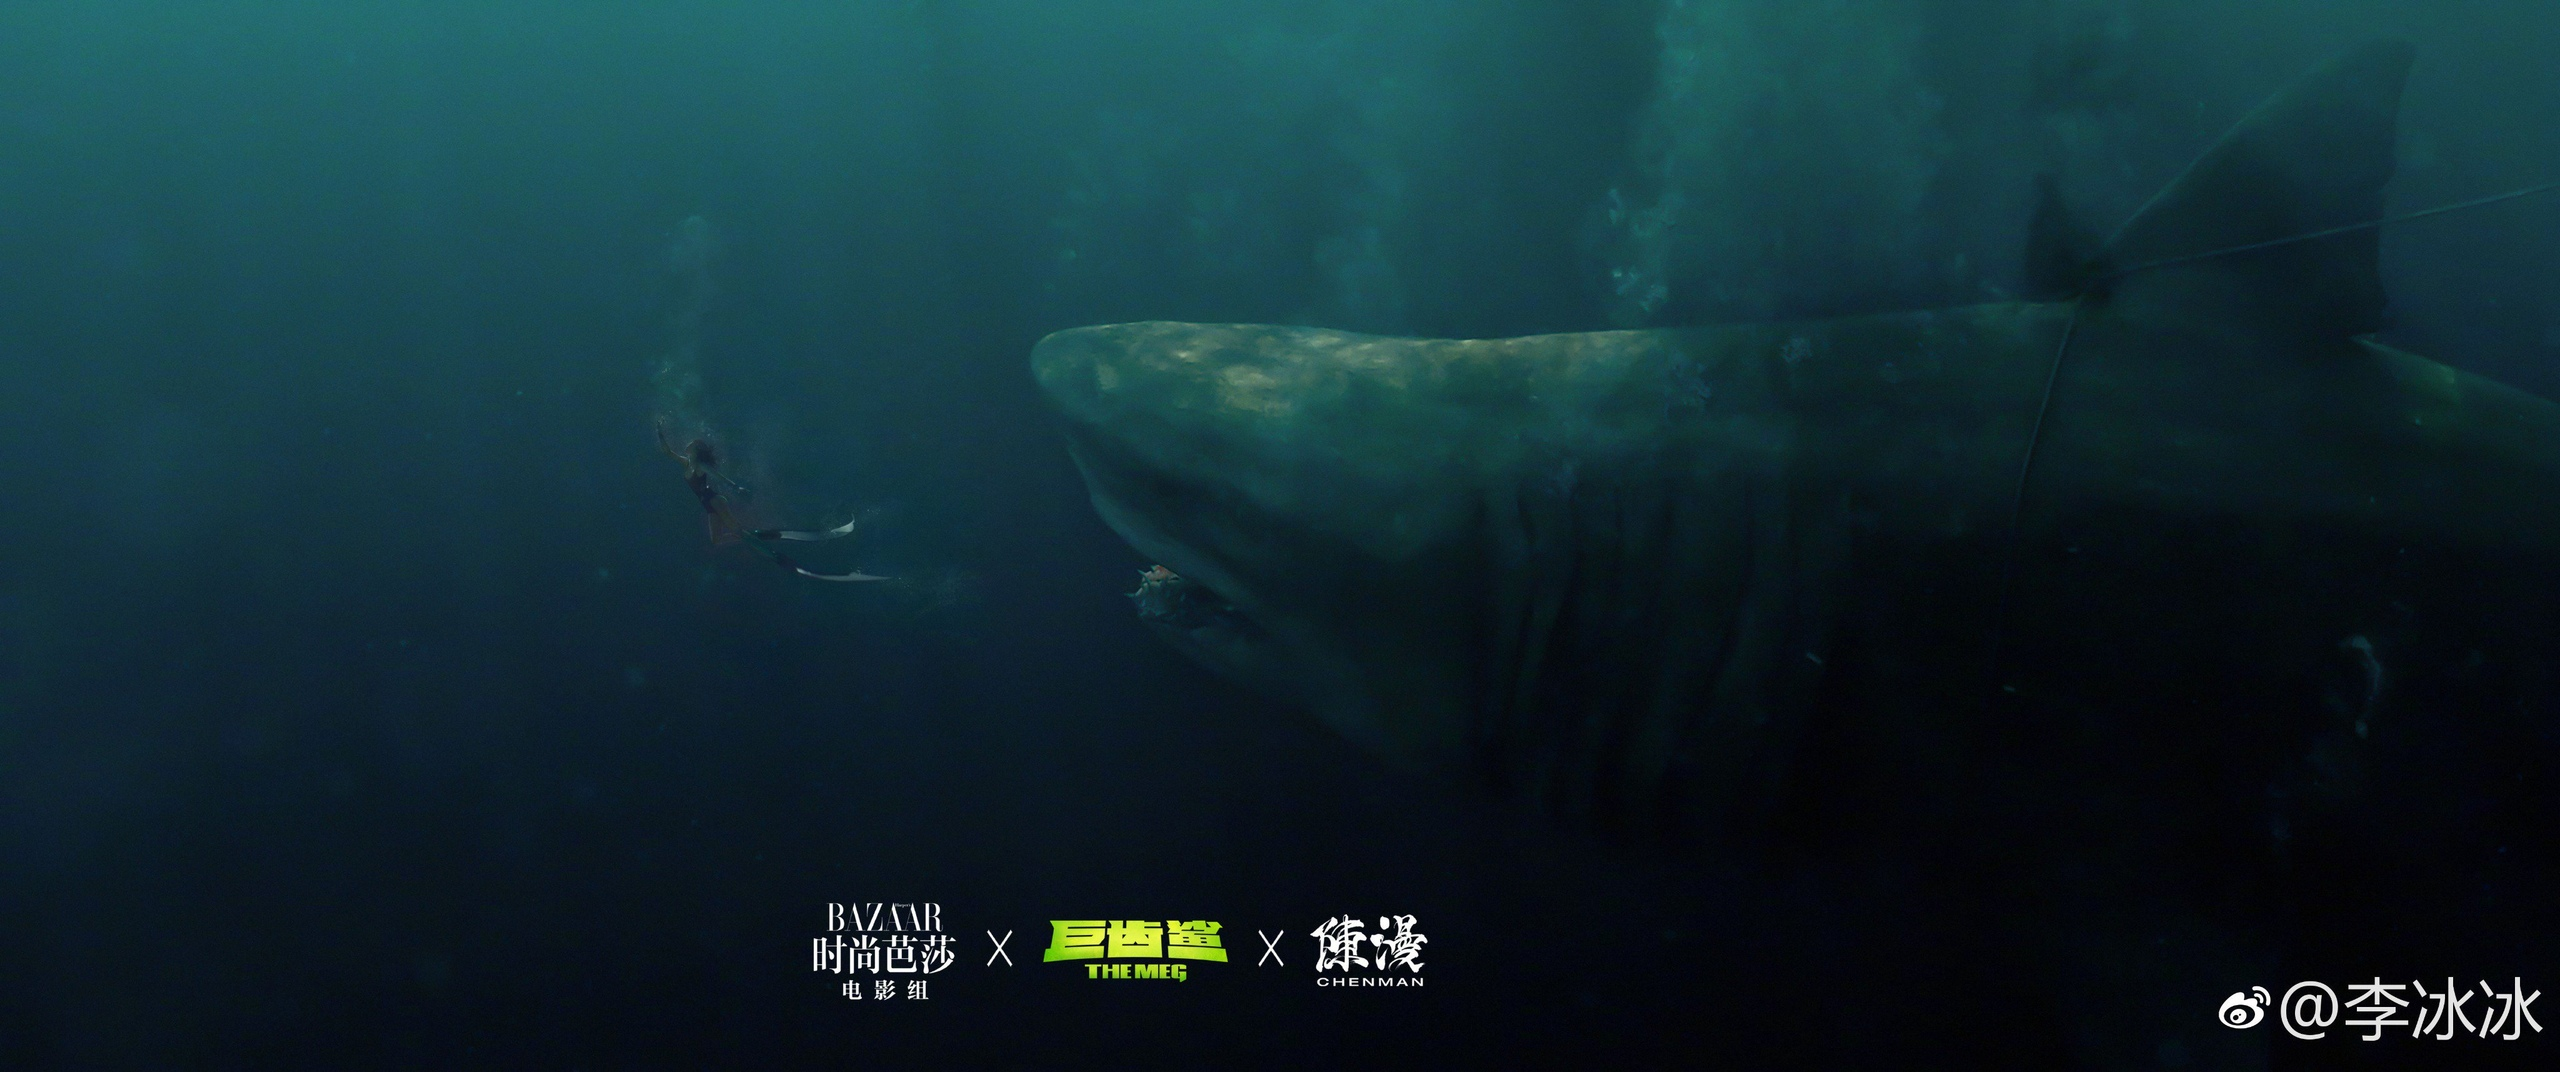 megalodon shark movie - 1000×629